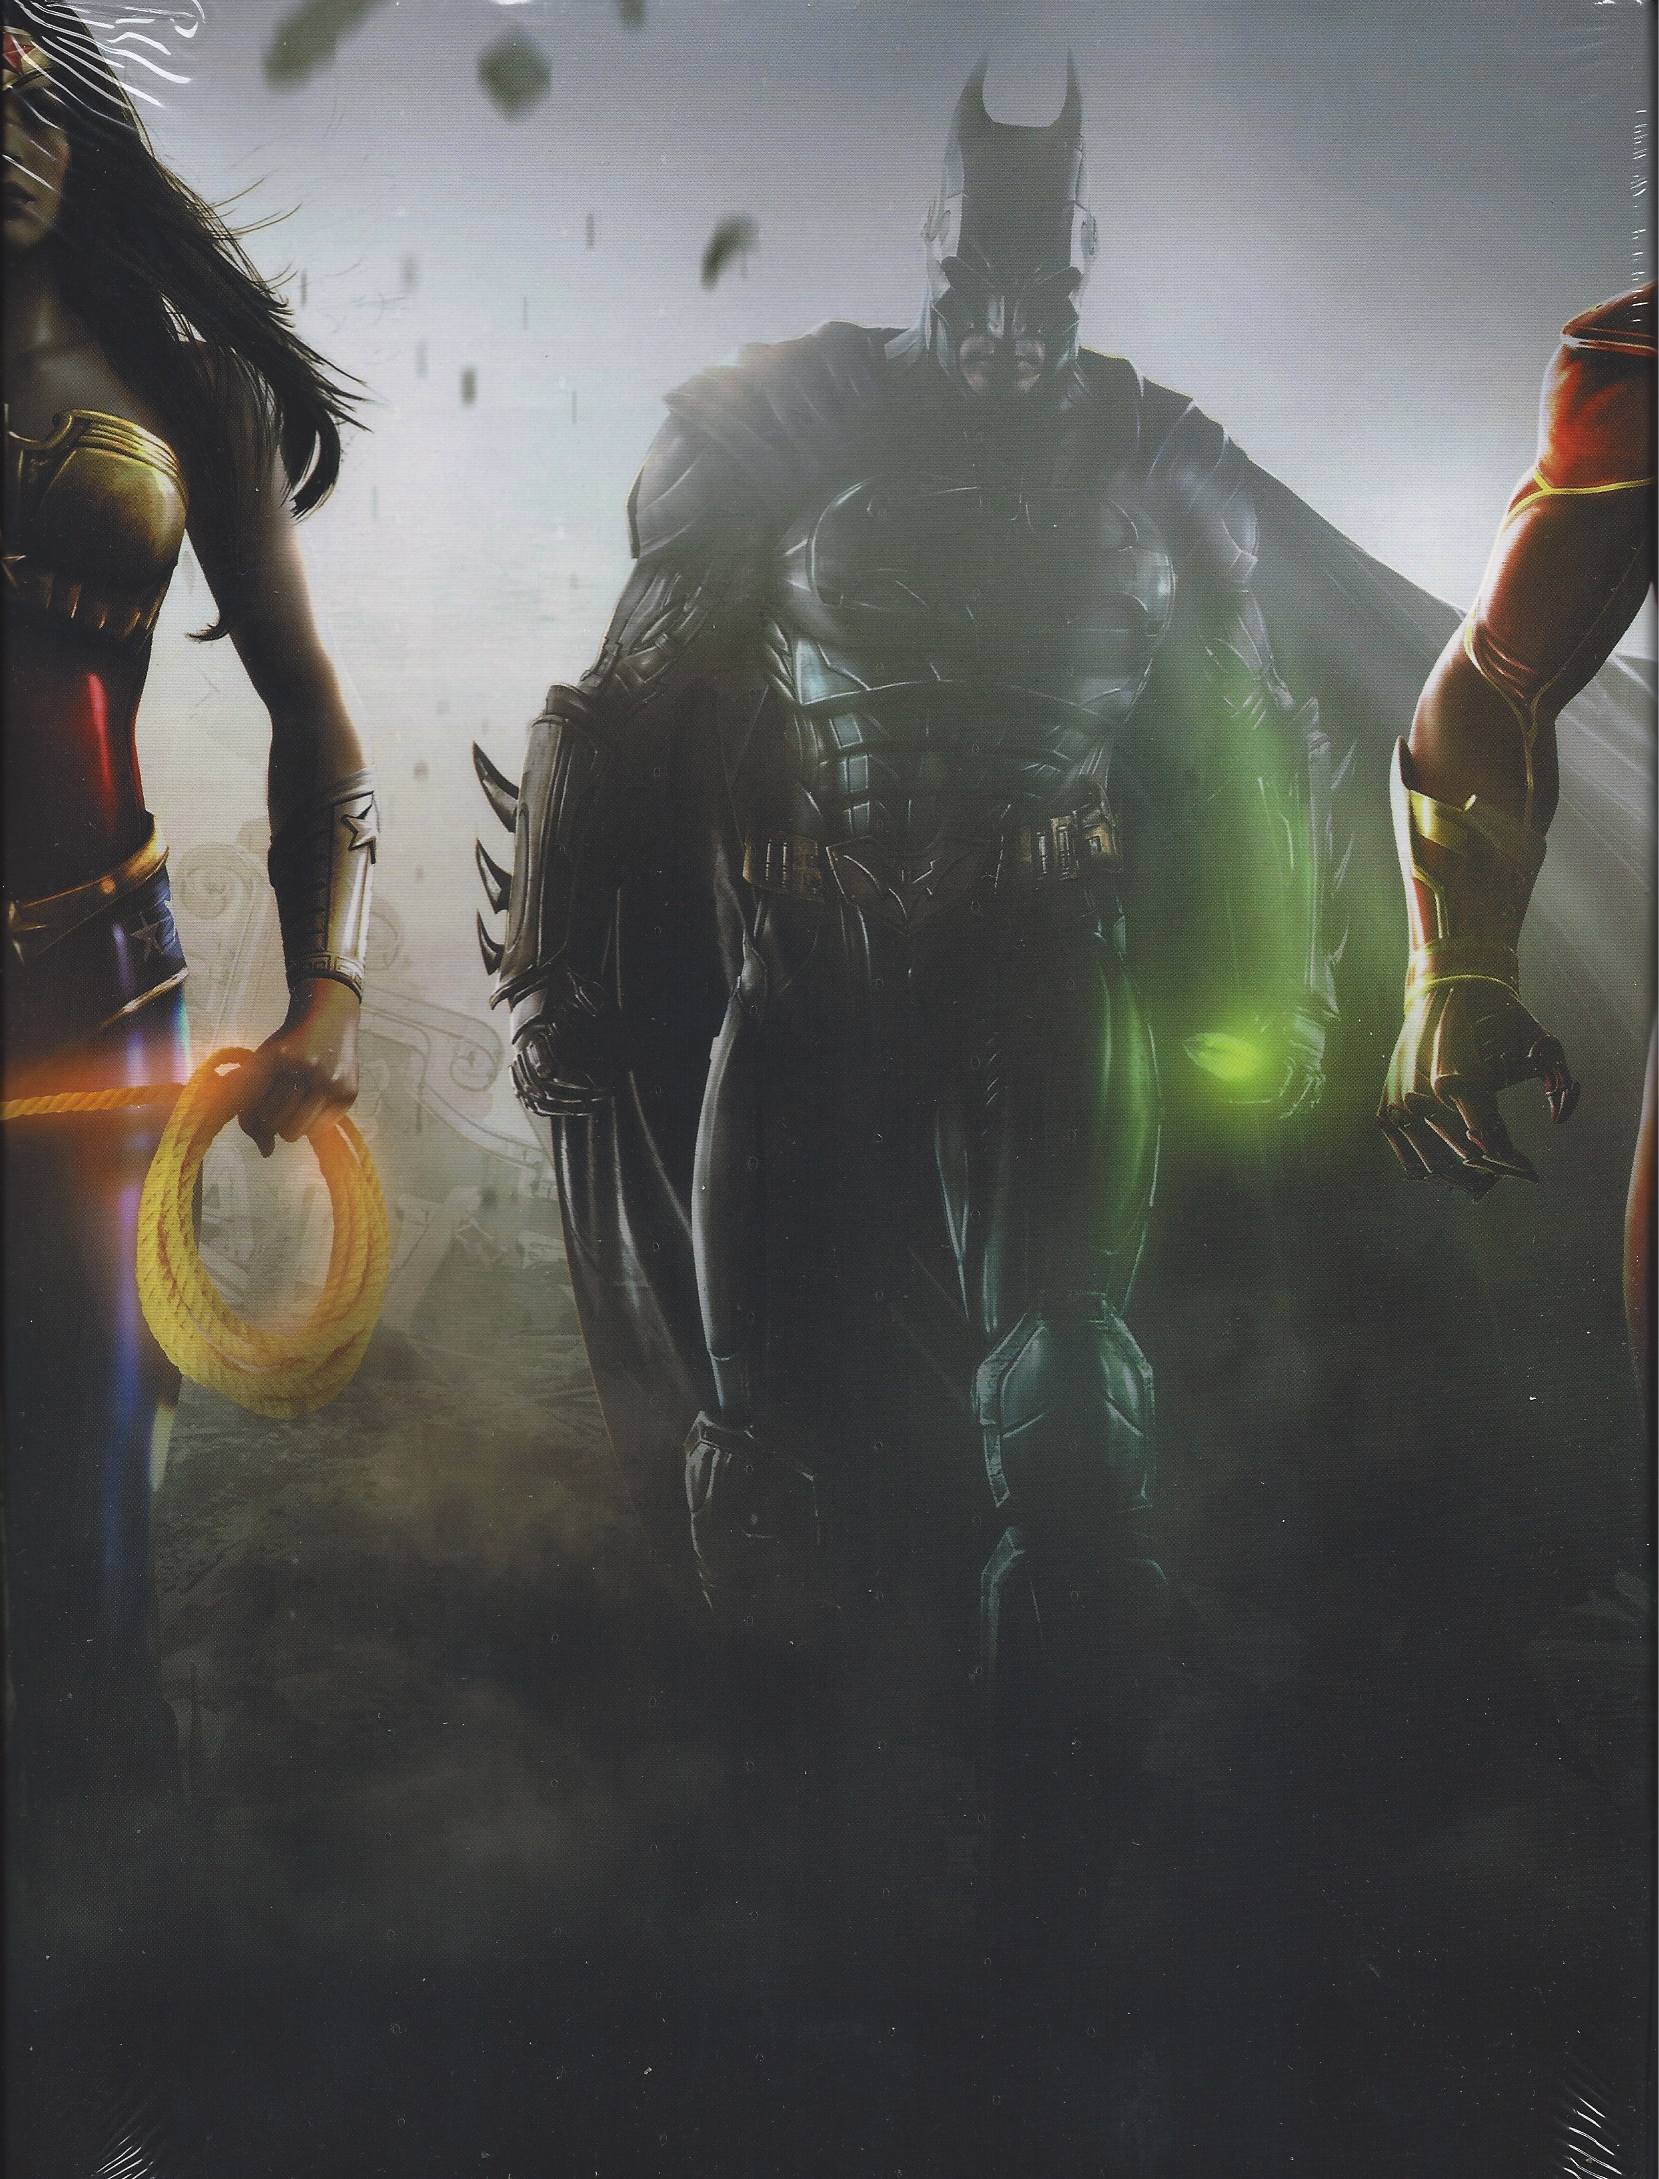 Injustice: Gods Among Us strategy guide